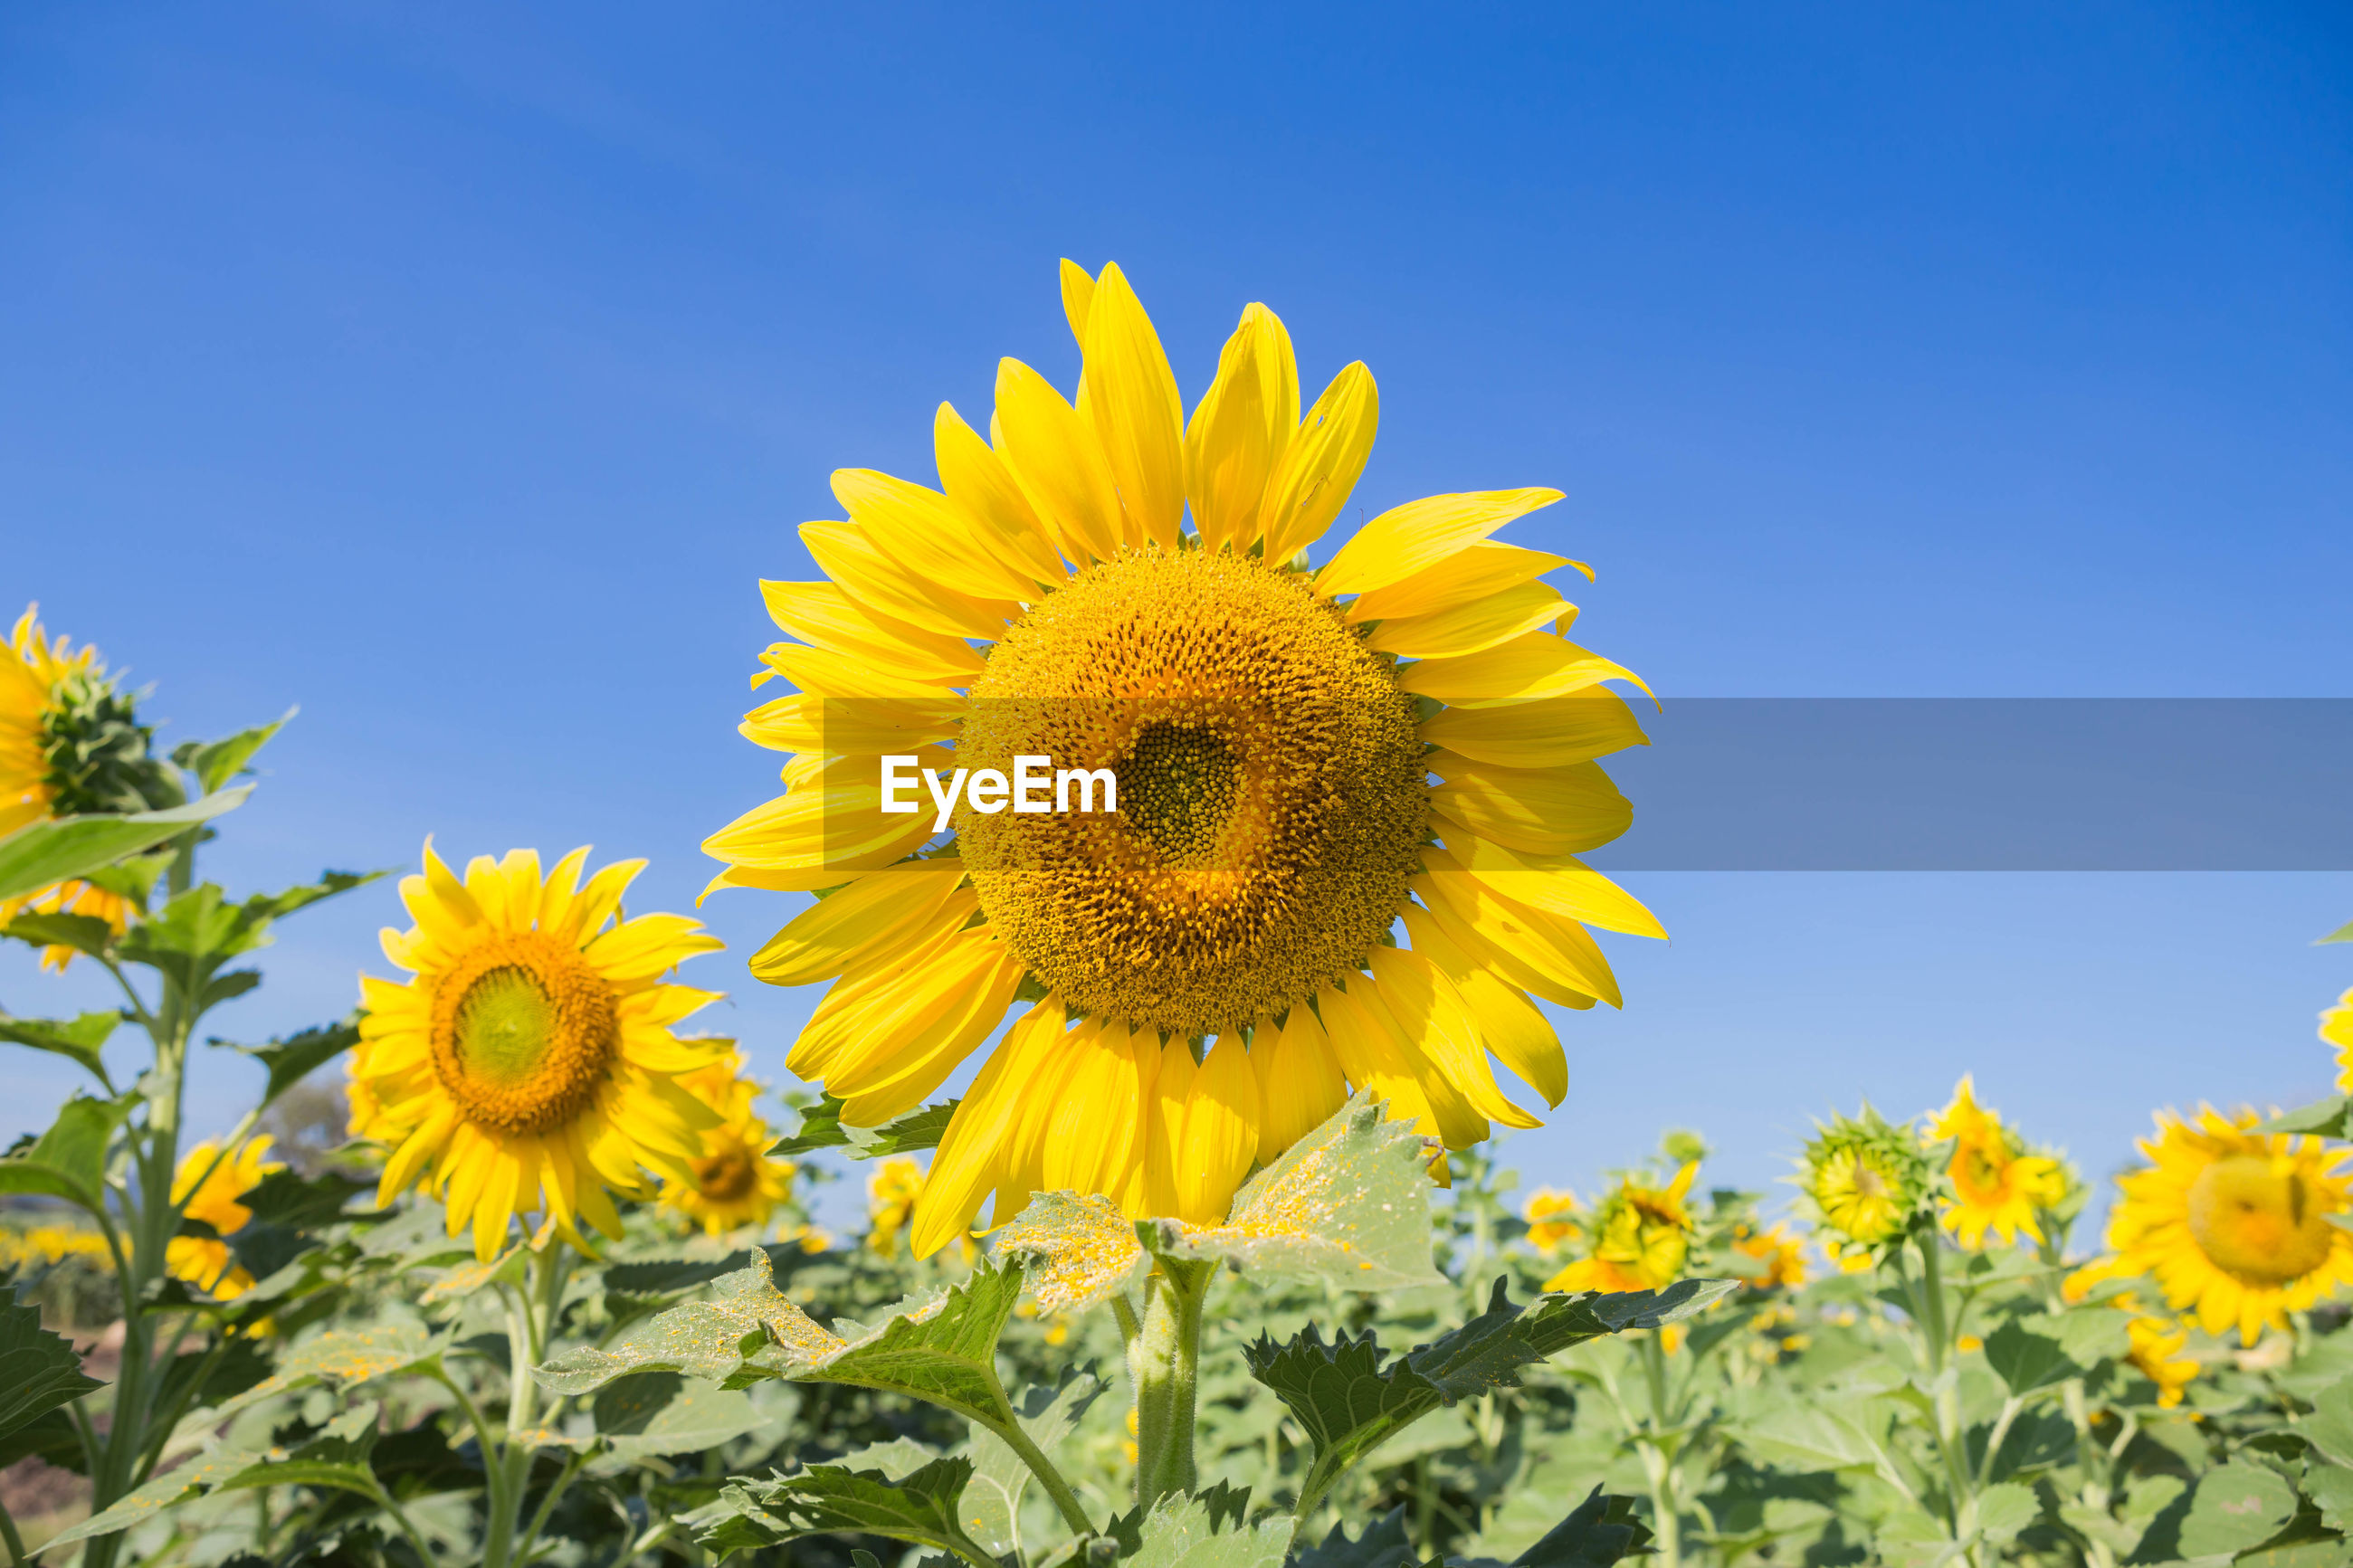 CLOSE-UP OF YELLOW SUNFLOWER IN FIELD